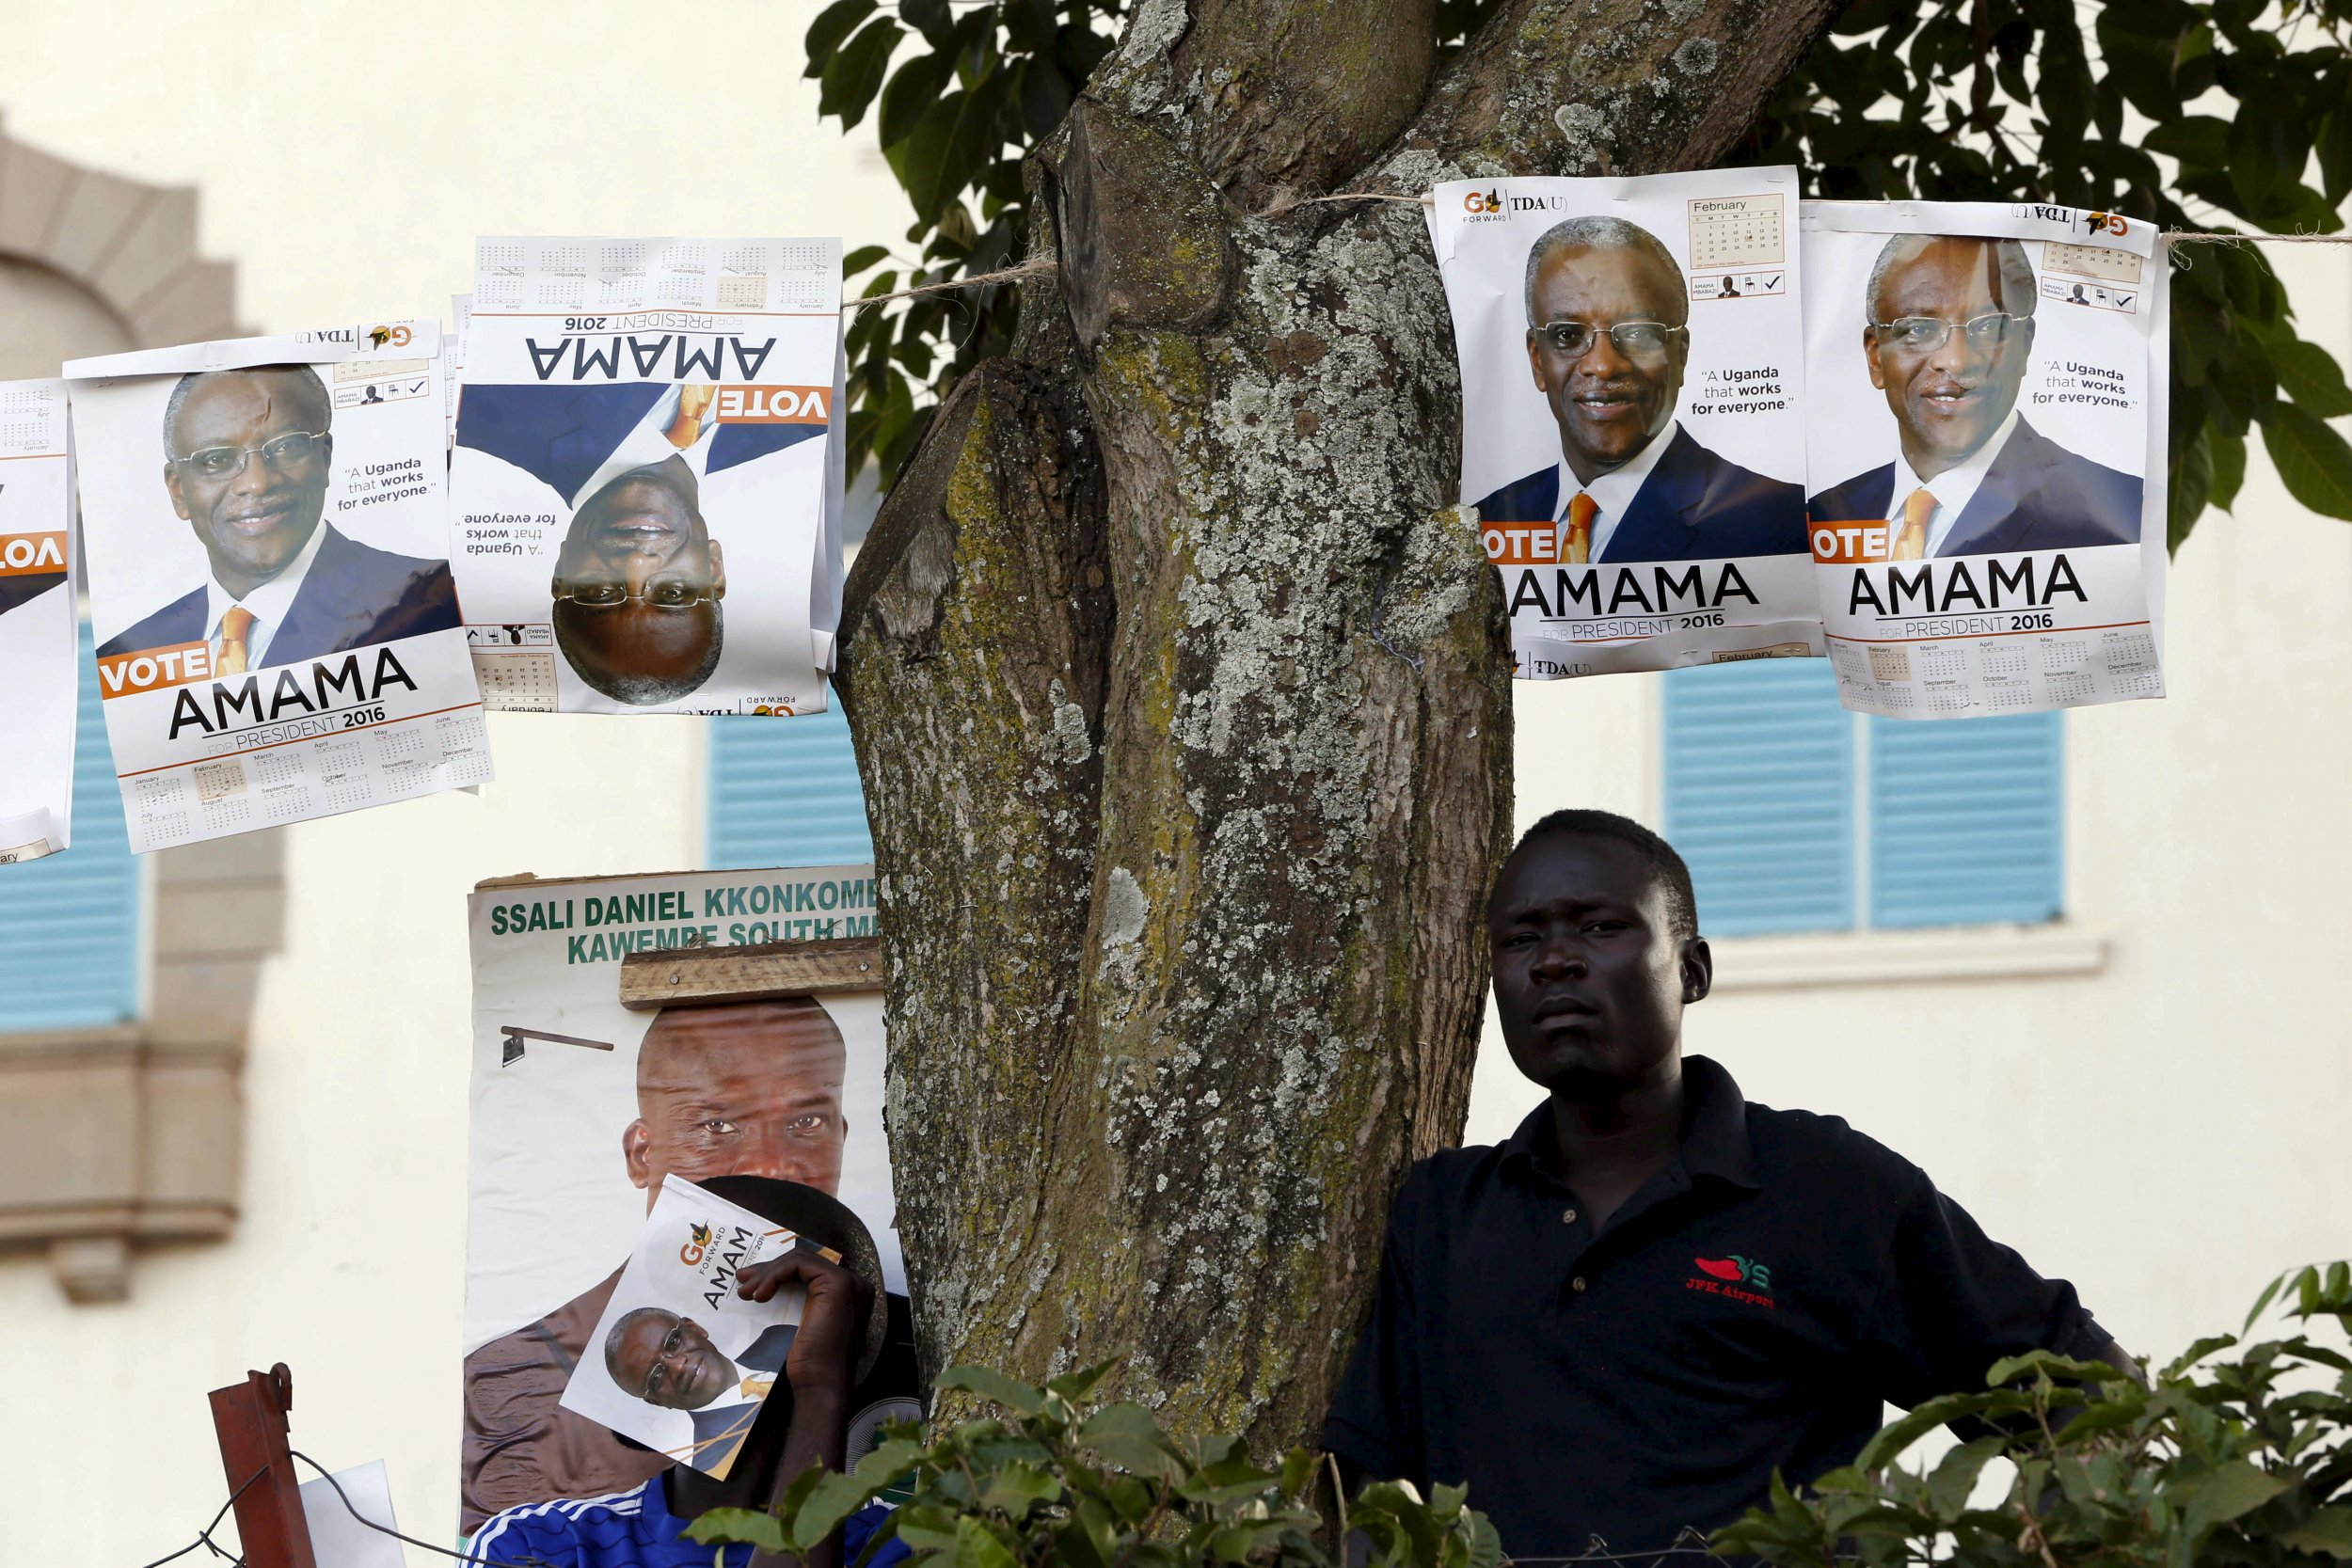 An Amama Mbabazi supporter rests during a campaign rally.